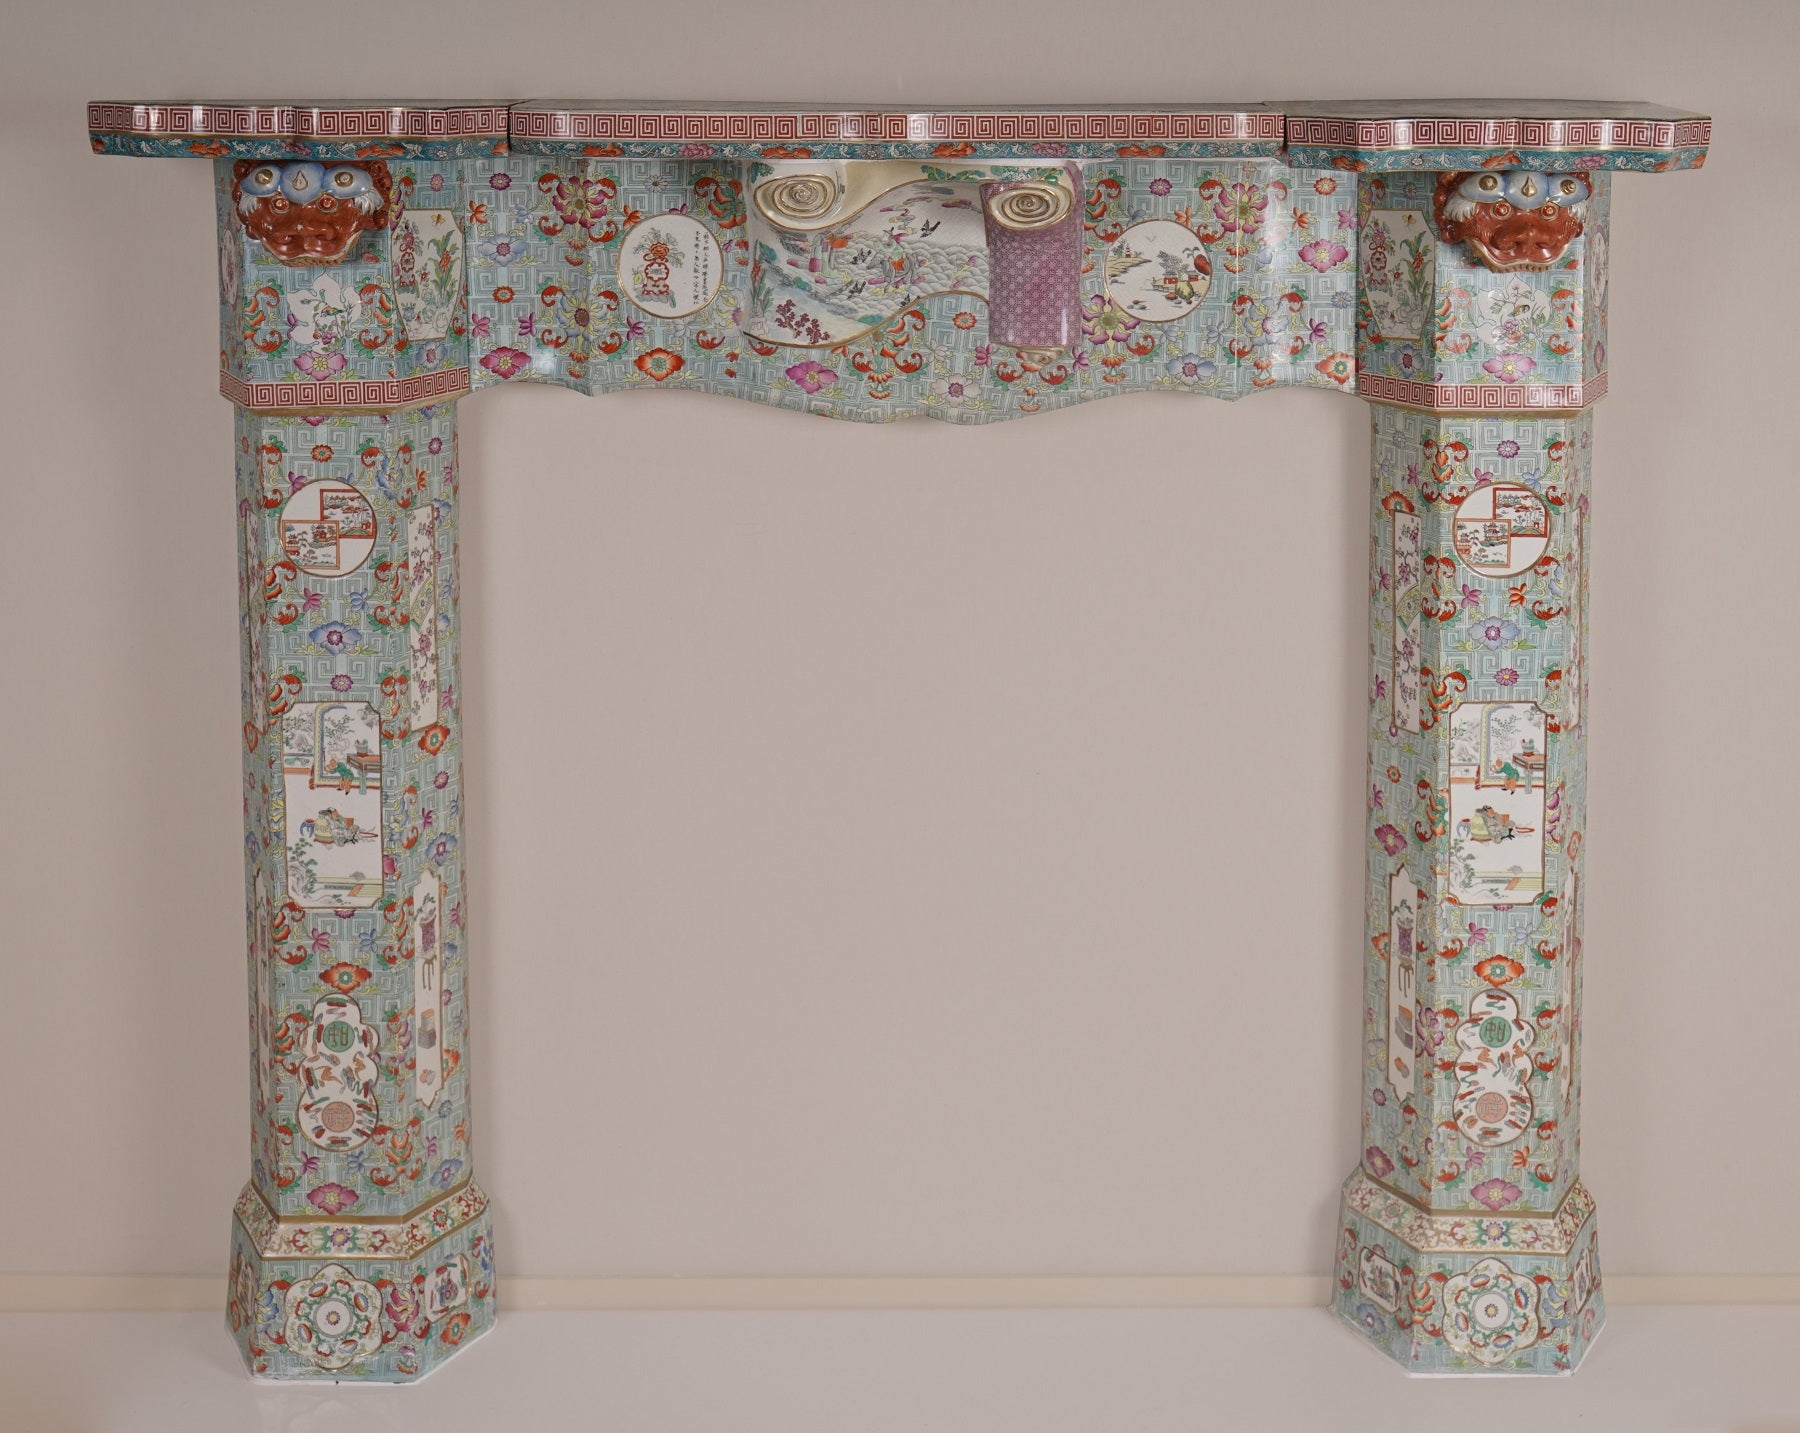 A Fine and Rare Mason's Ironstone Chinoiserie Chimneypiece